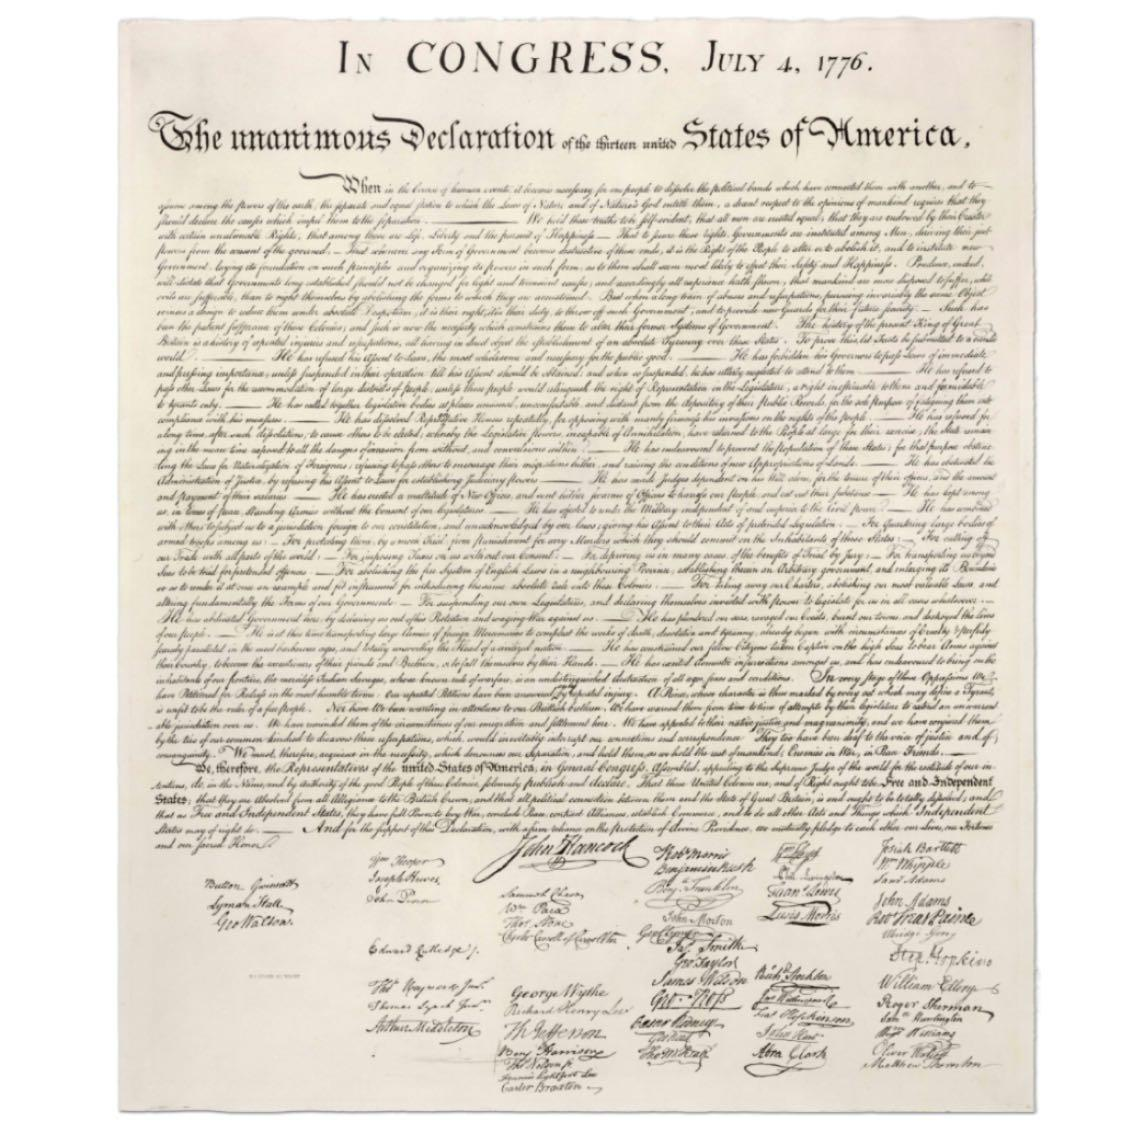 Happy Independence Day America. I am so thankful I get to live in the land of the free and the home of the brave. Take a minute today to read the Declaration of Independence. It's something we should all have written on our hearts. Love God, Love People, Serve Others.